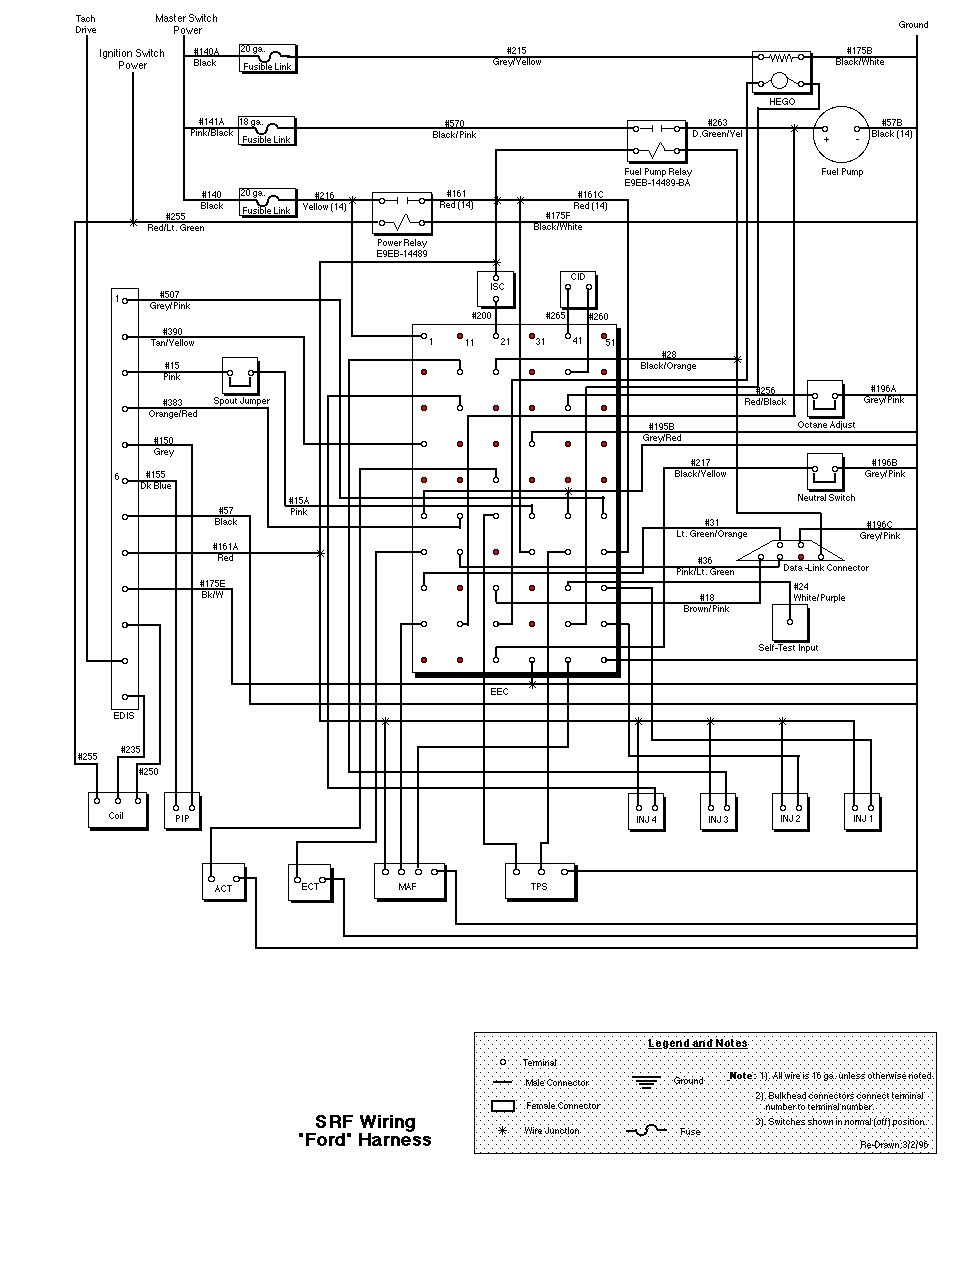 medium resolution of l9000 wiring schematic wiring diagram sheet1994 ford l9000 wiring diagram wiring diagram sheet 1990 ford l9000